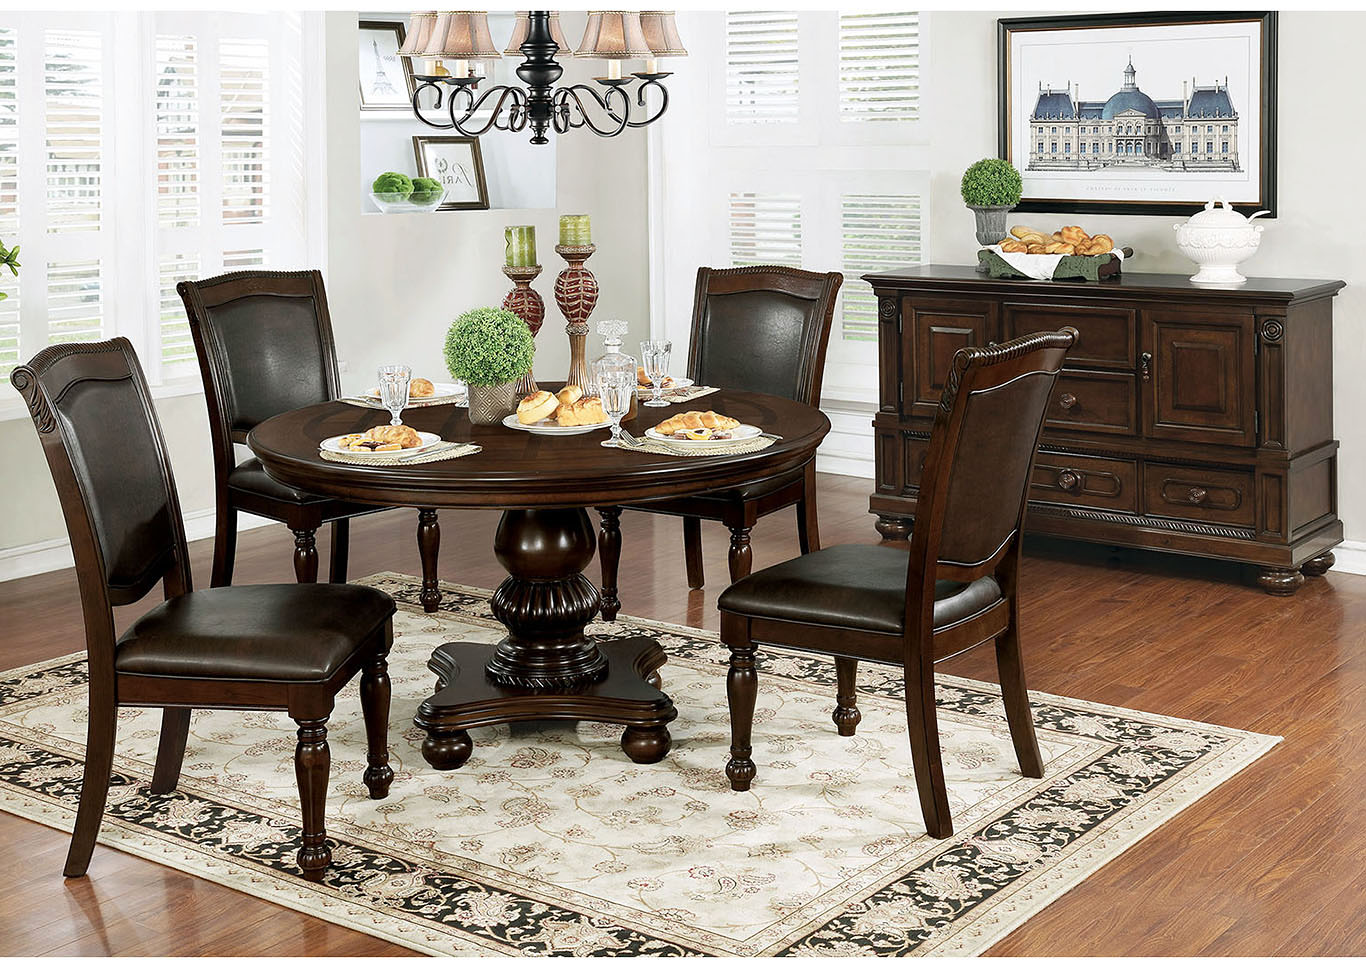 Home Furnishing Center   Woodhaven, NY Alpena Brown Cherry Round Dining  Table